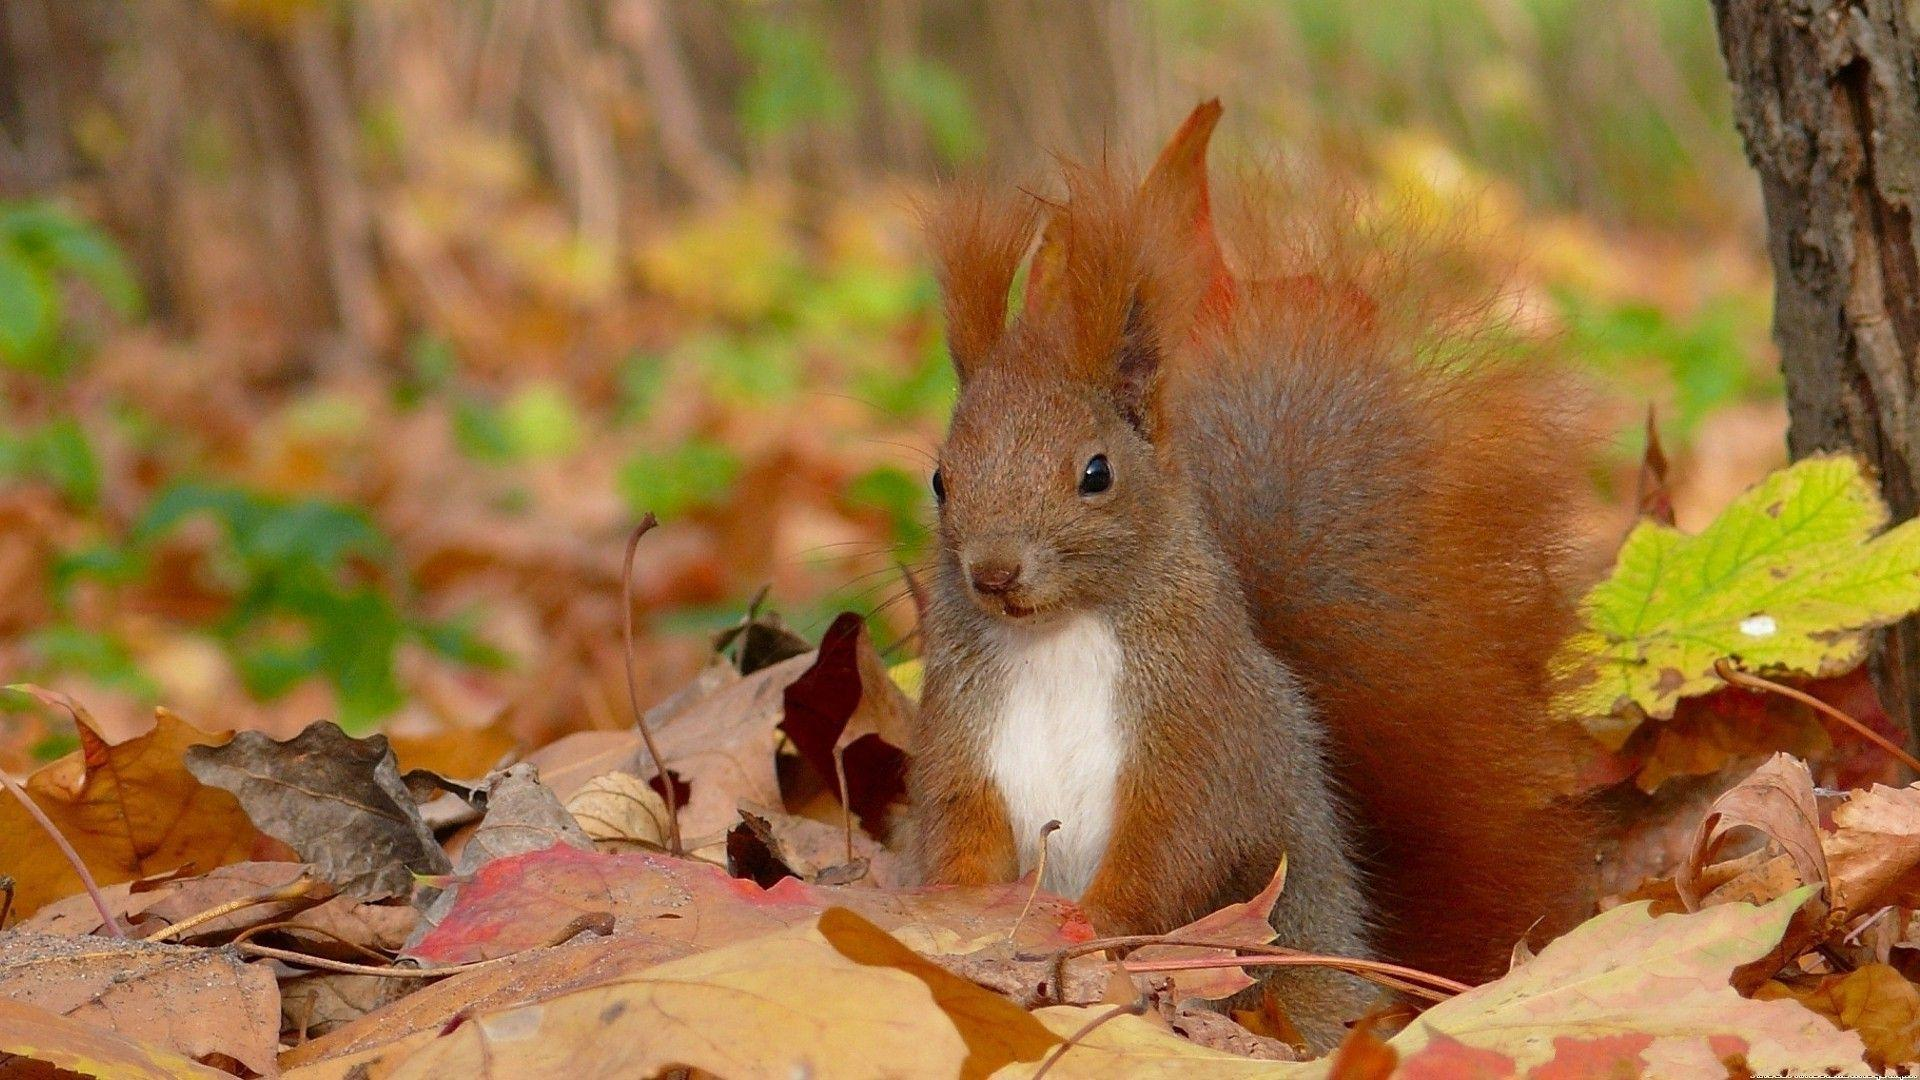 Animal Wallpapers Desktop Images Free Wallpapers Cute: Squirrel Wallpapers